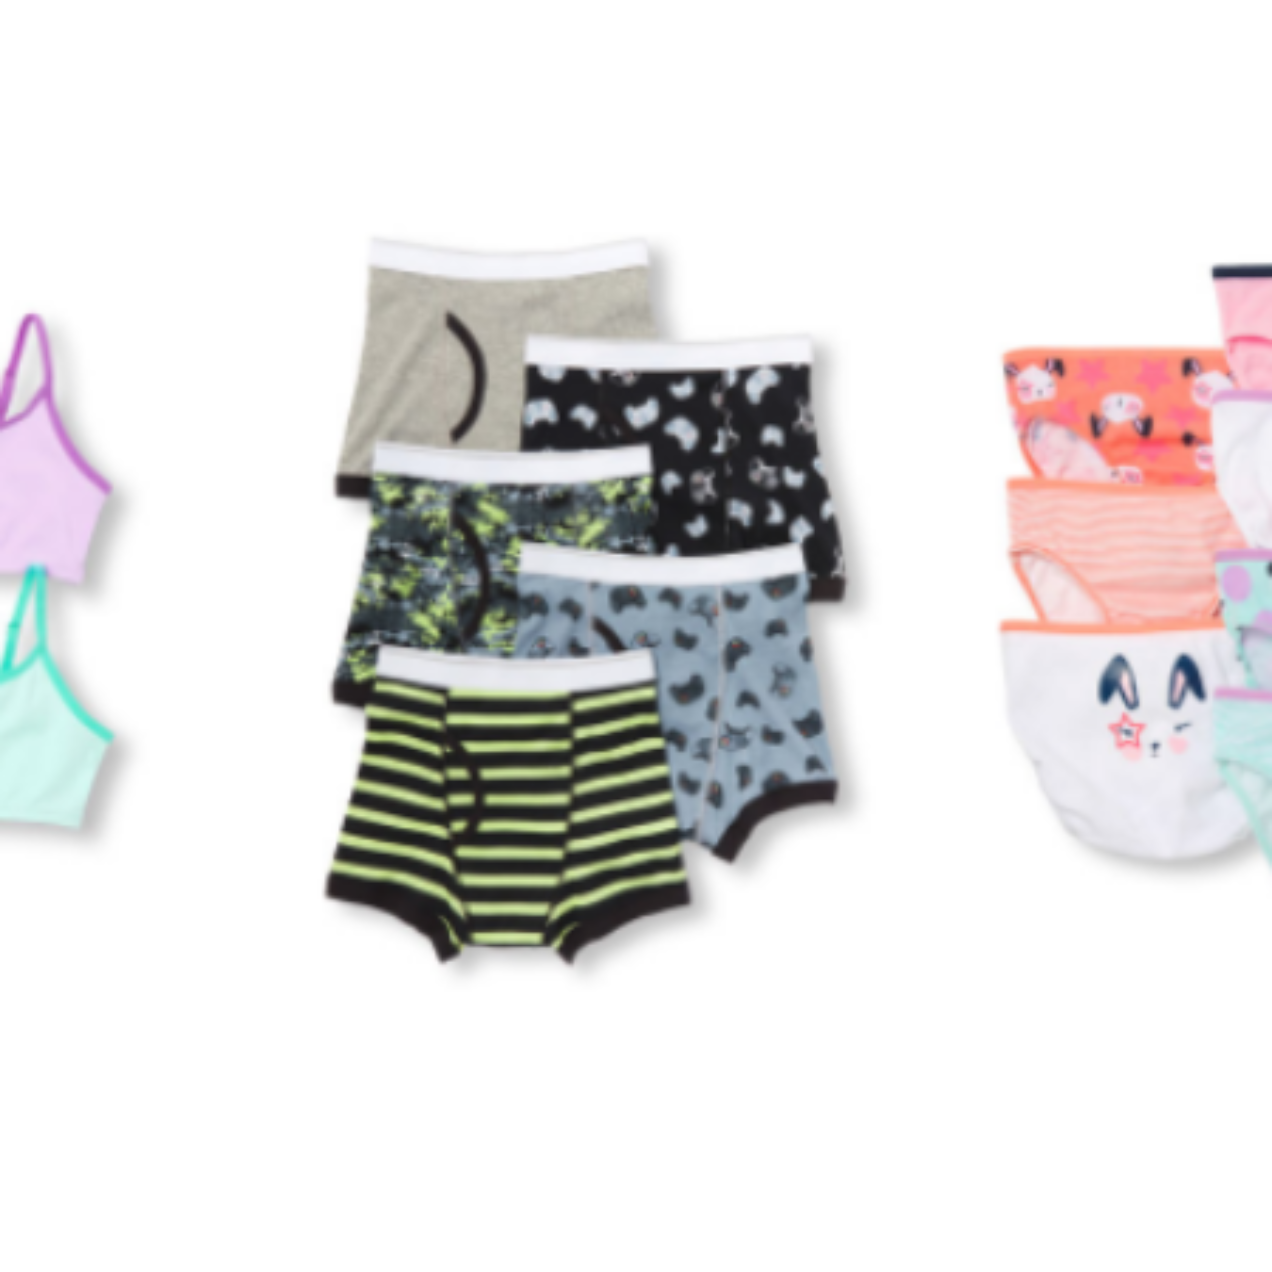 Save 60% Off Site-wide at The Children's Place = 7 Pairs of Underwear Only $7.98